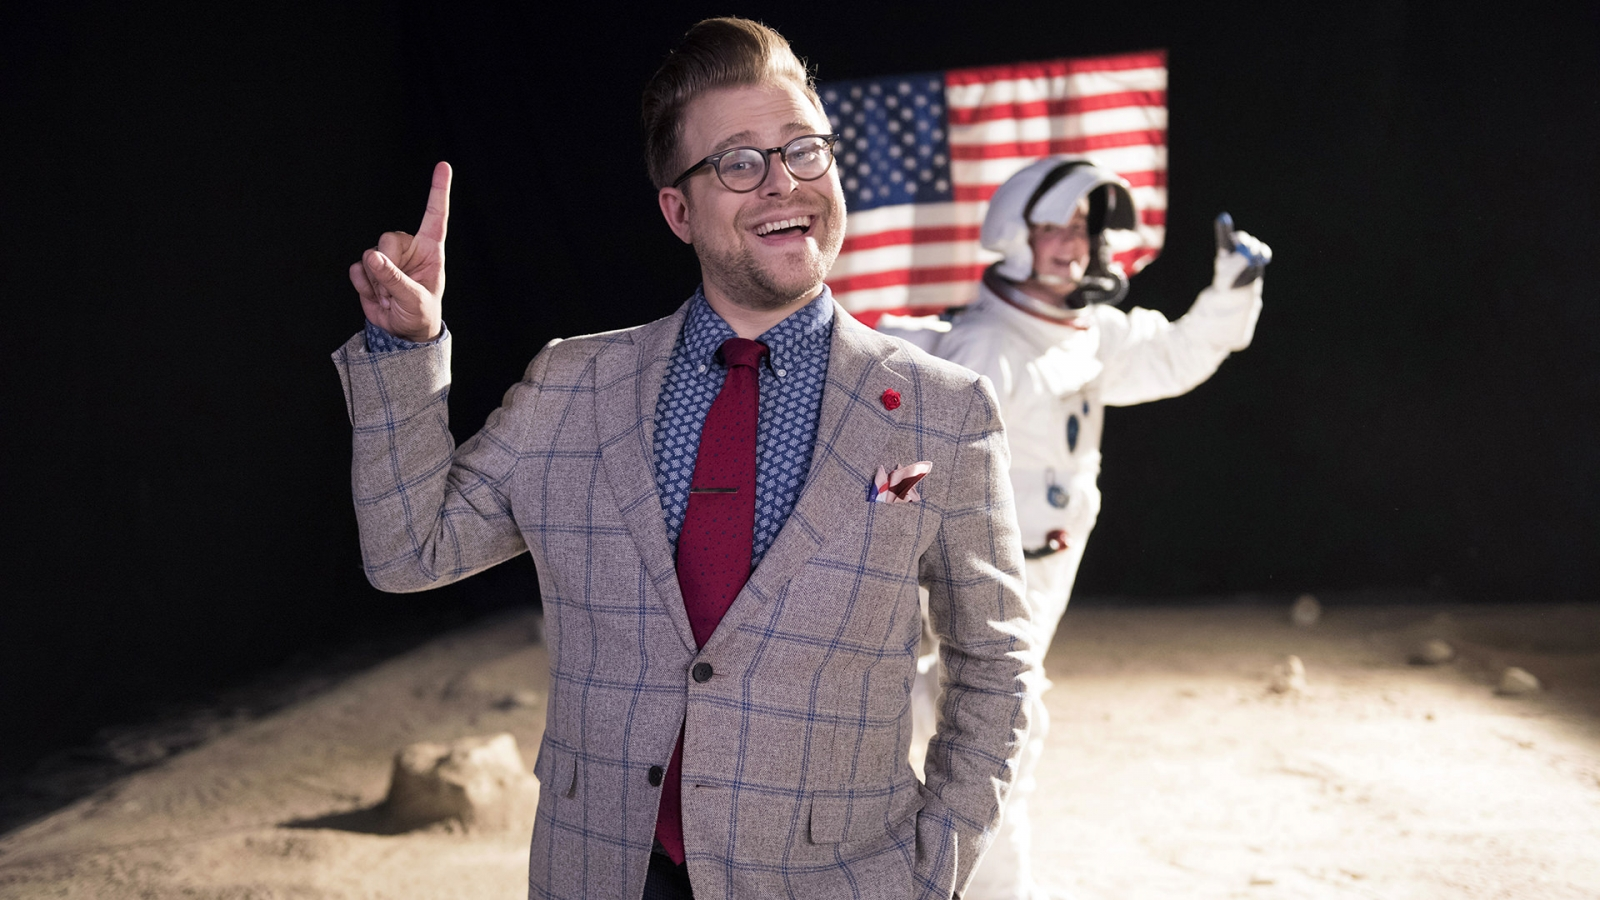 Adam Ruins Conspiracy Theories truTVcom 1600x900